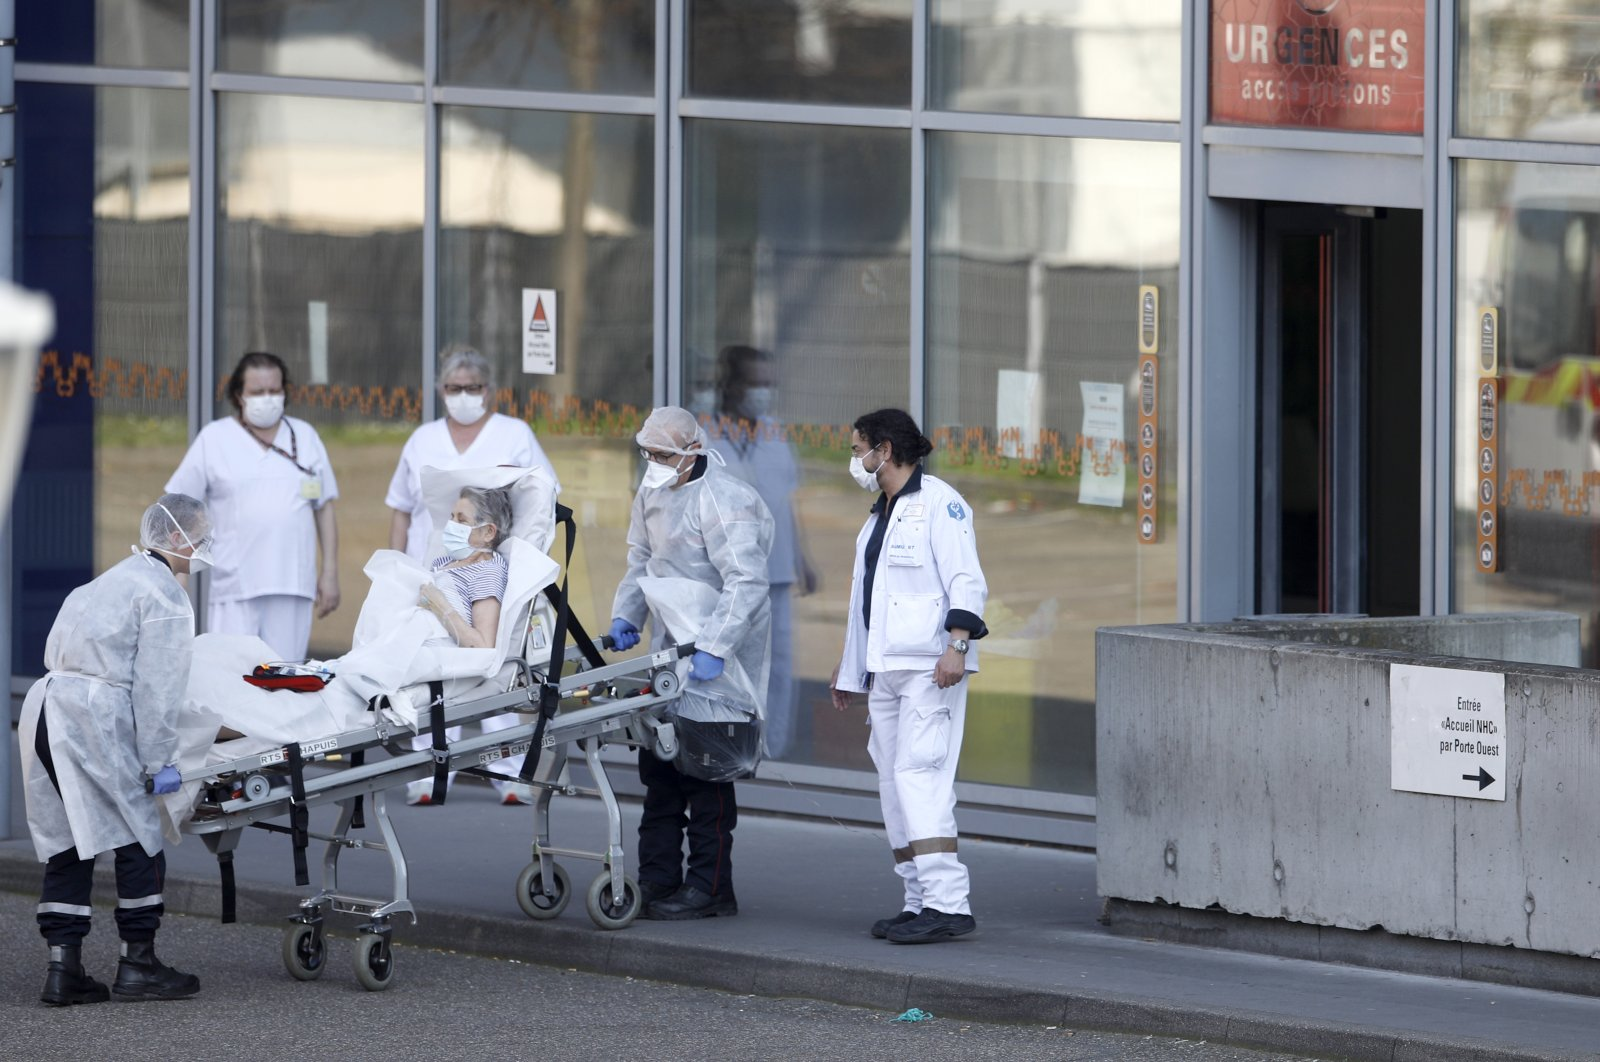 An elderly woman is admitted at the emergency service of an hospital in Strasbourg, eastern France, Thursday, March 19, 2020. (AP Photo)